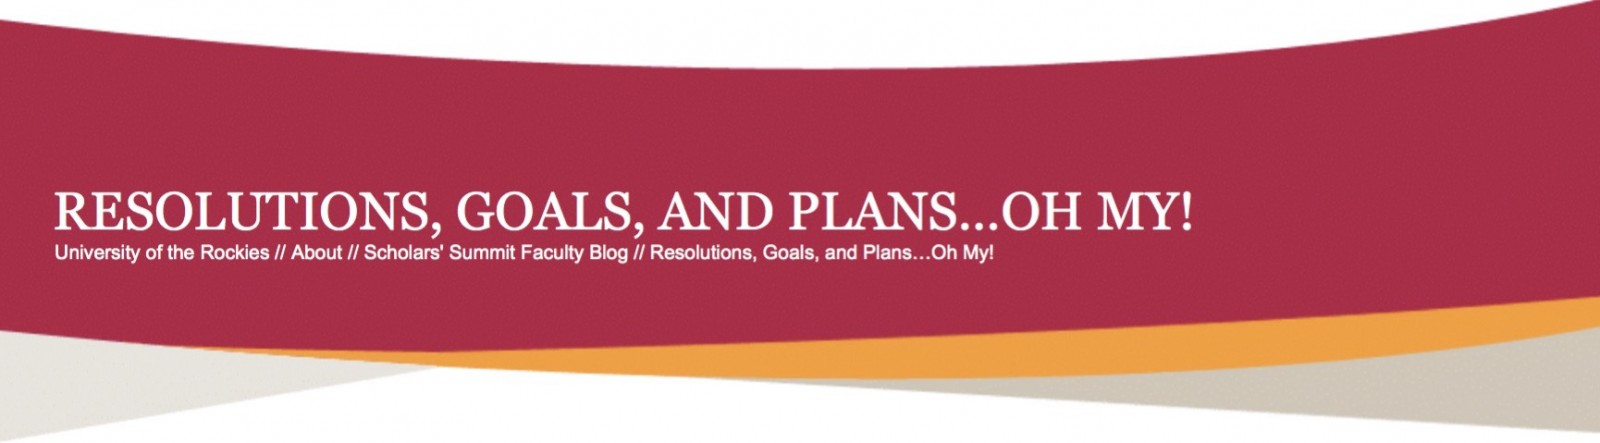 Resolutions, goals, and plans... oh my!